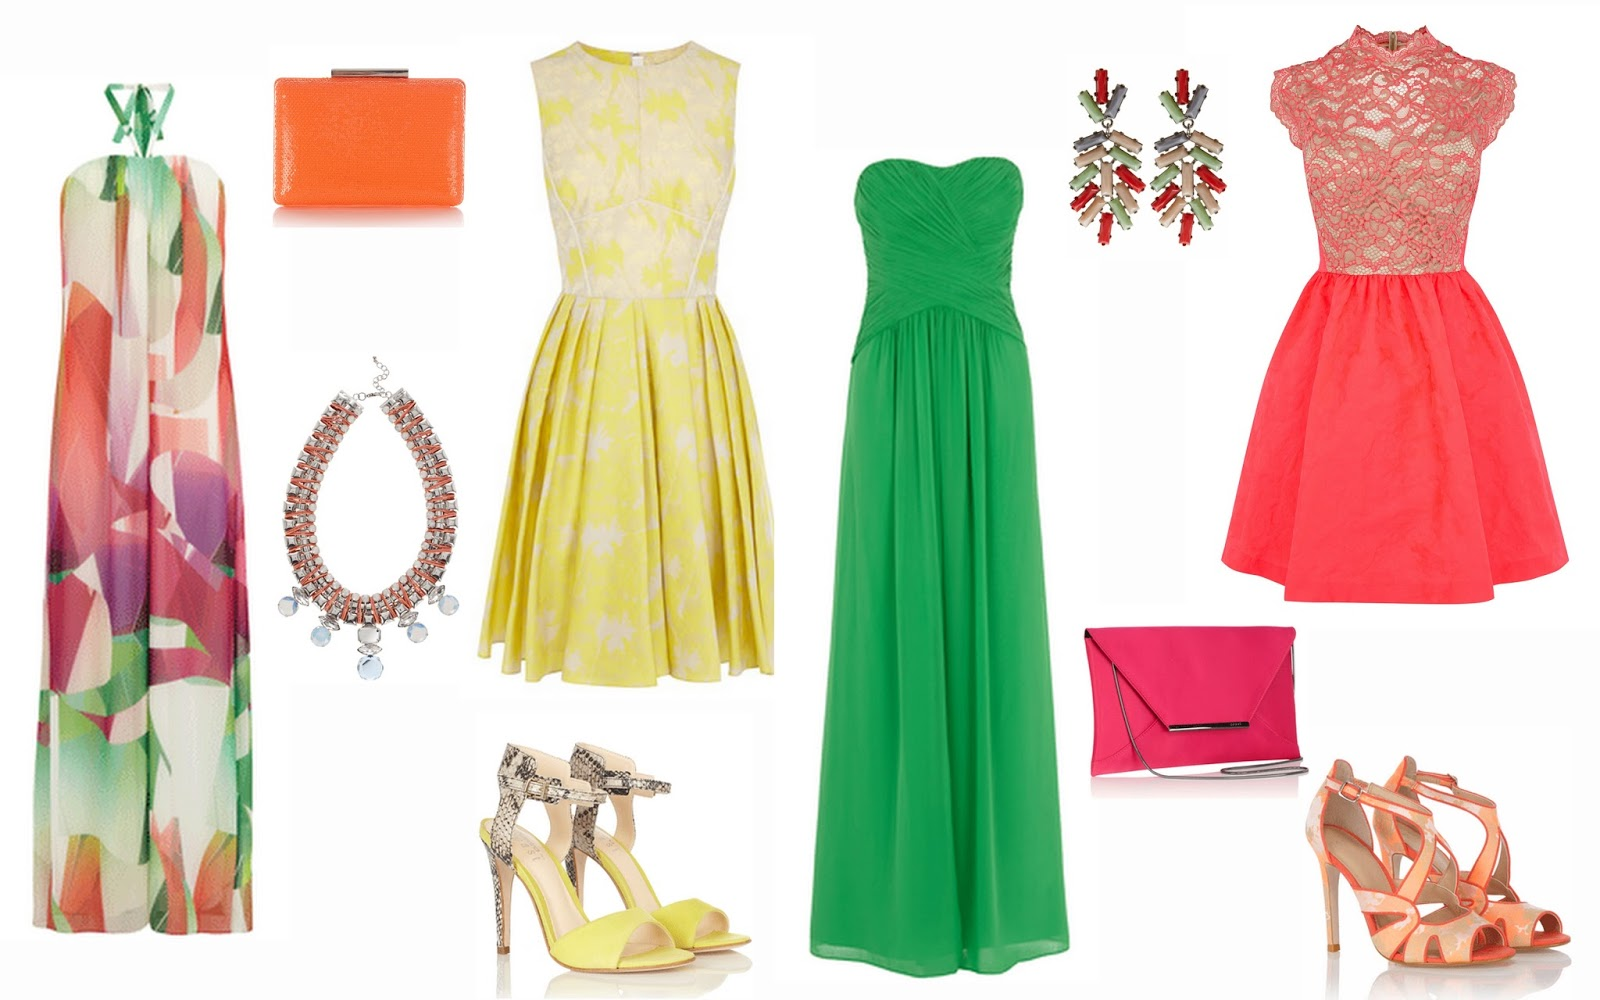 wedding guest dresses summer summer dresses for wedding Amaline yellow jacquard dress 85 Isadora yellow python heels 35 Margeaux emerald green maxi dress 95 Hera multi hue earrings 7